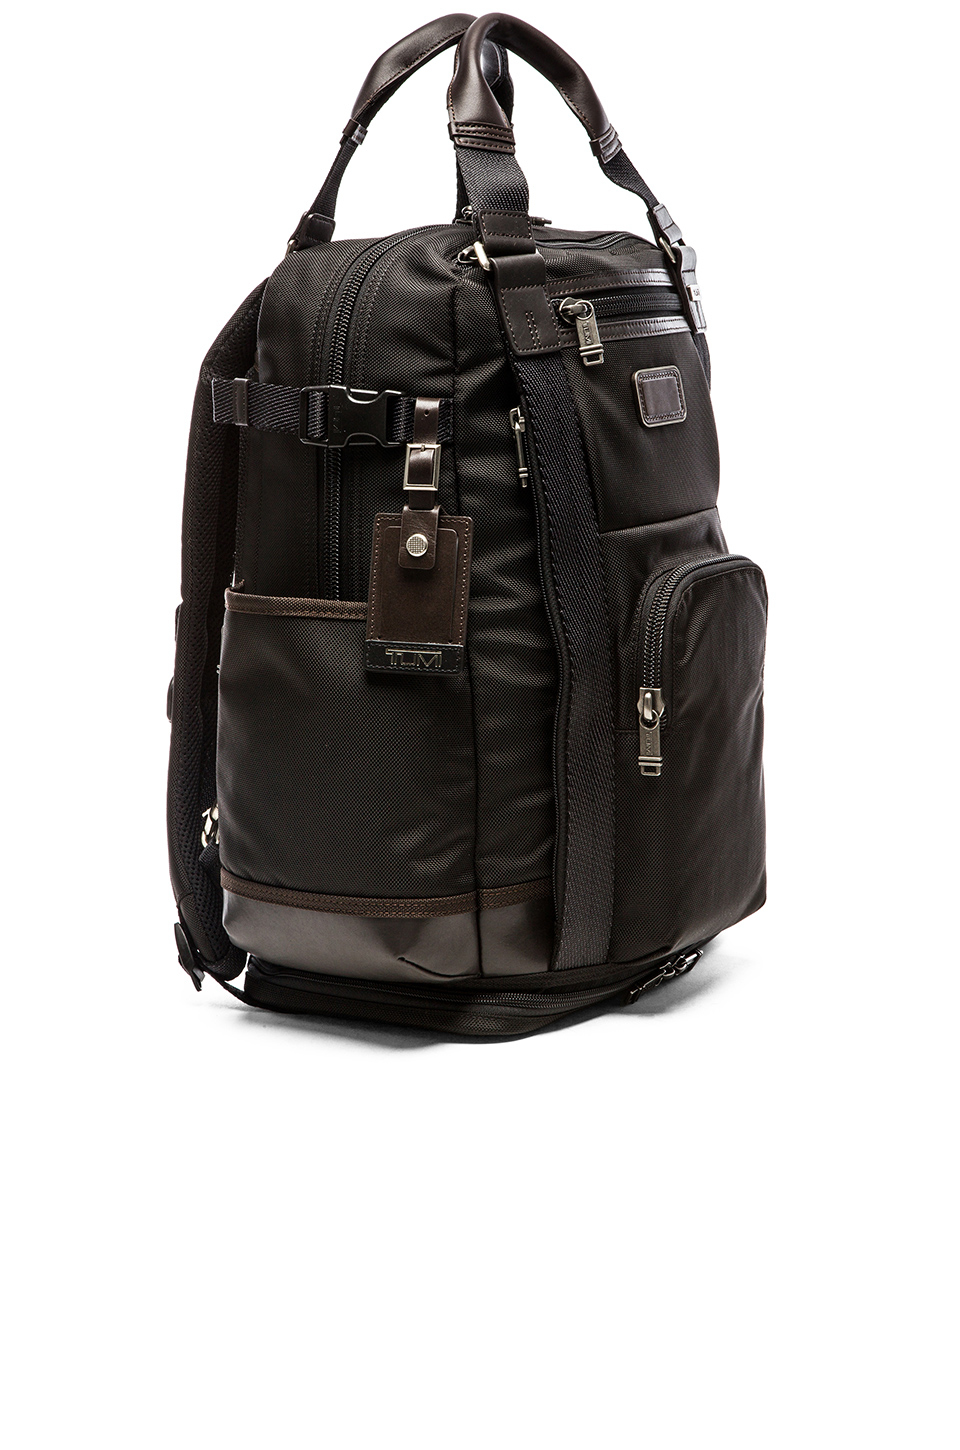 Elegant Tumi Alpha Bravo for Cool Travel Bag Ideas: Tumi Alpha Bravo | Tumi Macys | Alpha Bravo Tumi Backpack